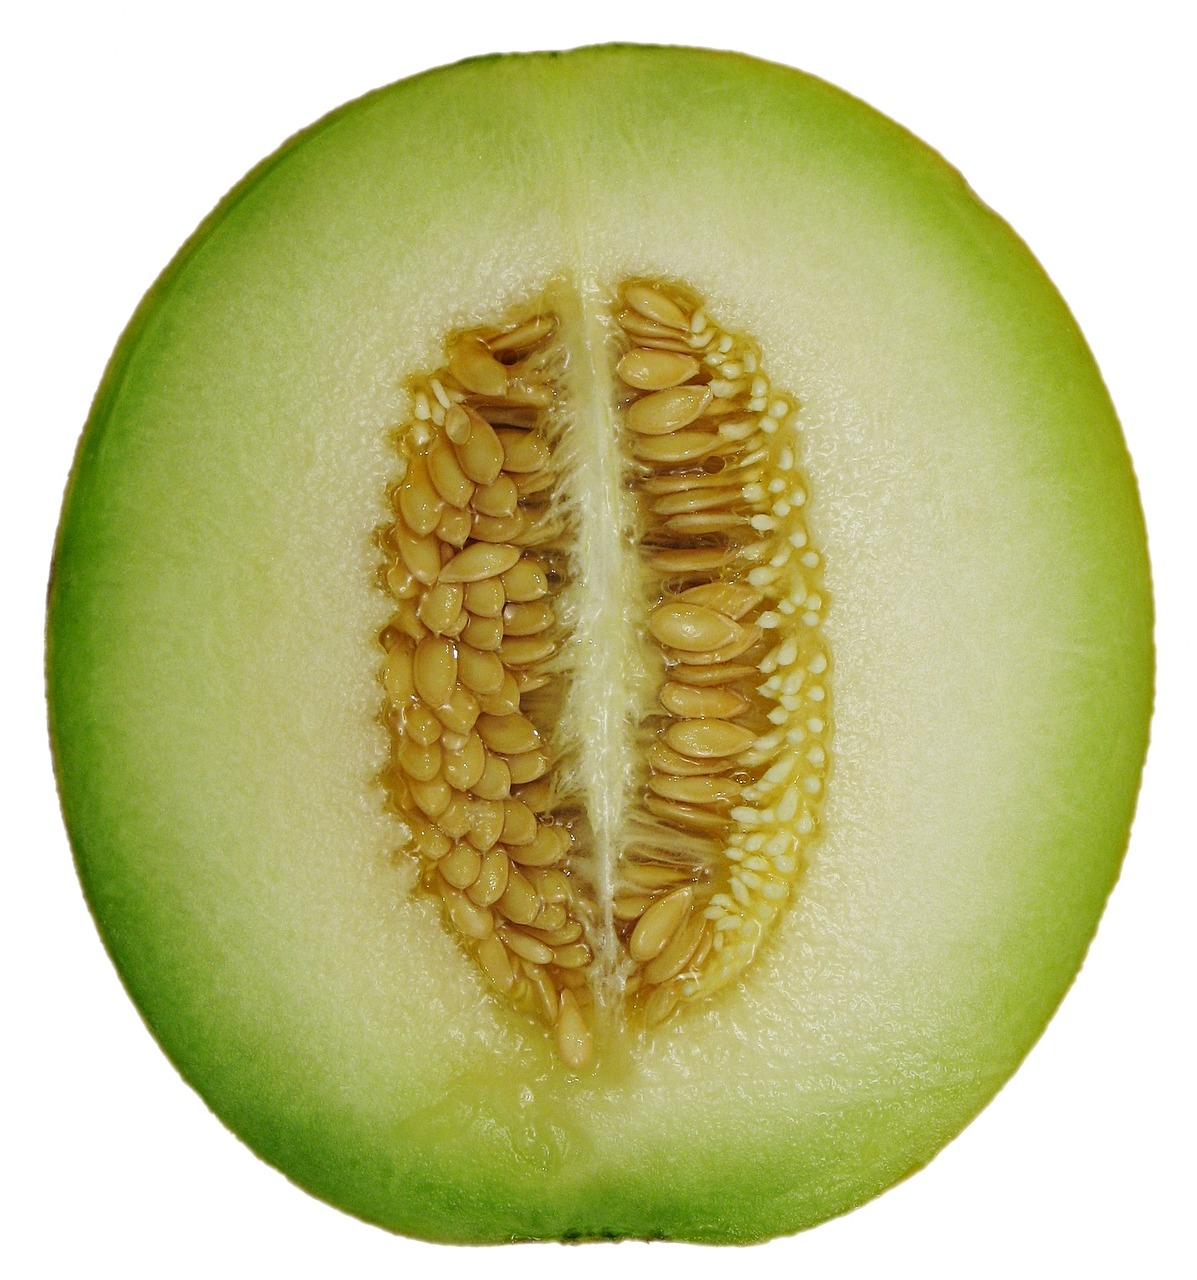 melon cross section,honeydew,cantaloupe,fruit,sweet,seeds,juicy,cut,half,slice,rind,fresh,free pictures, free photos, free images, royalty free, free illustrations, public domain